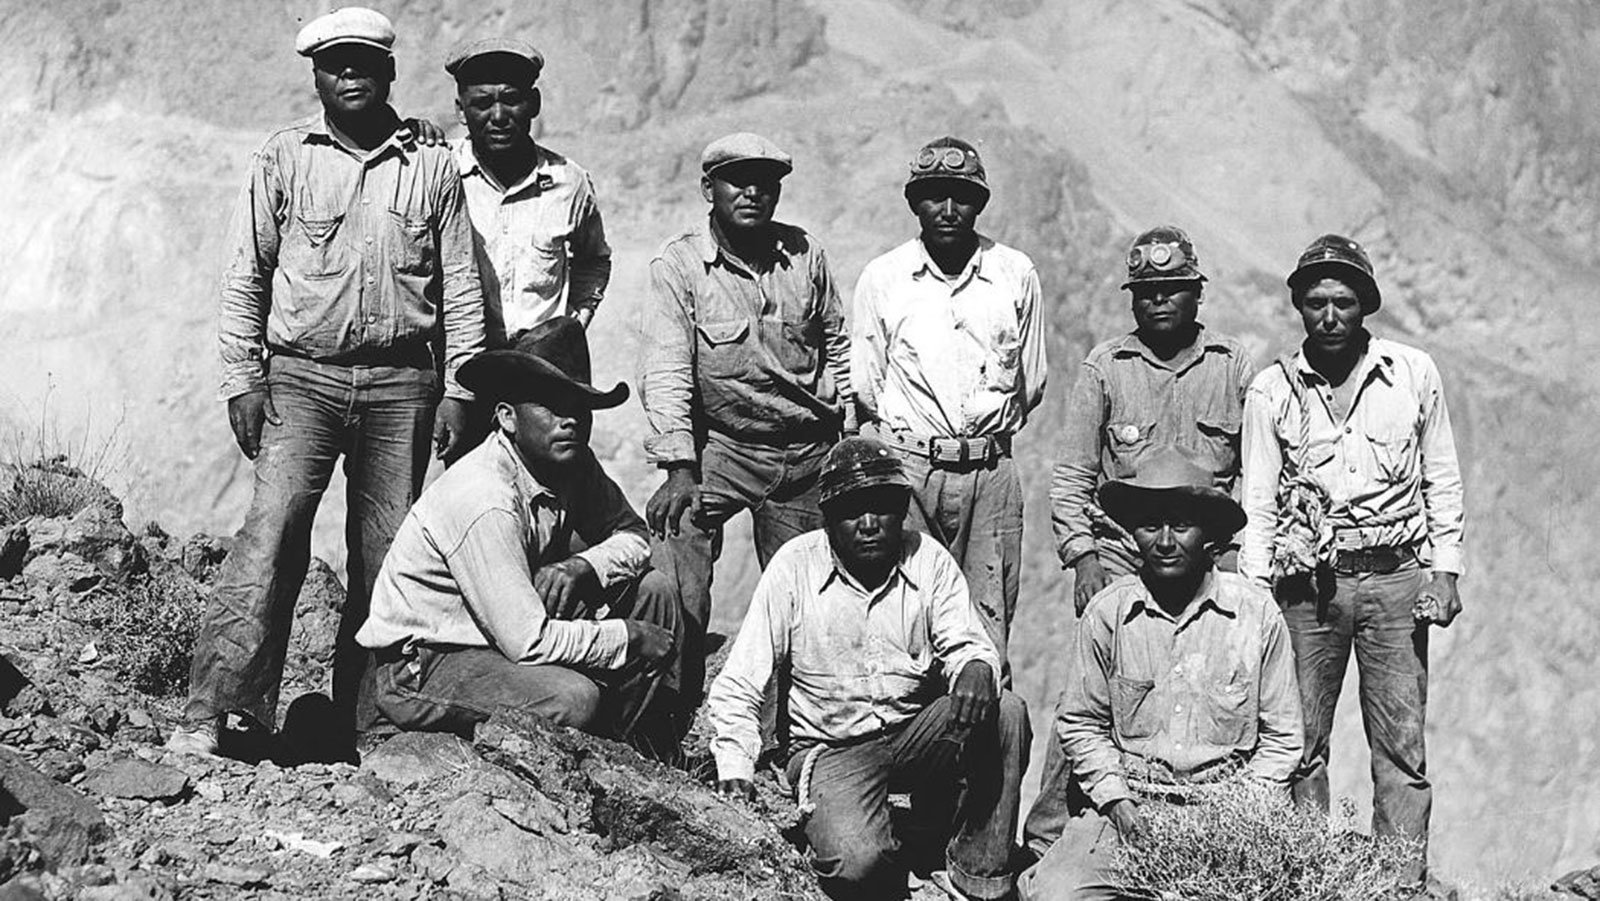 [Native Americans] employed on the construction of Hoover Dam as high scalers